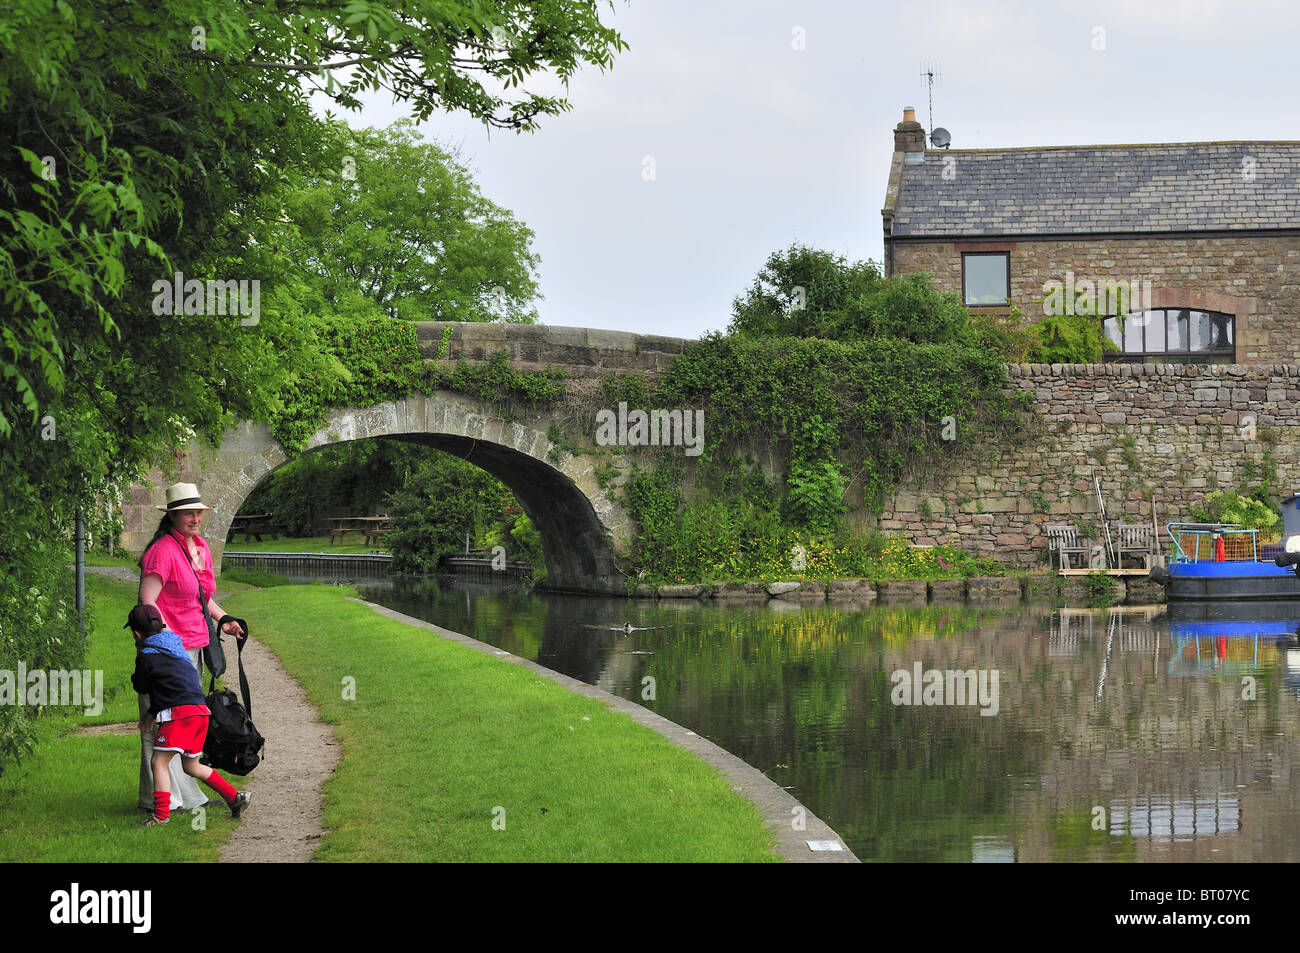 Mother son play towpath, landscape stone bridge,water refections - Stock Image